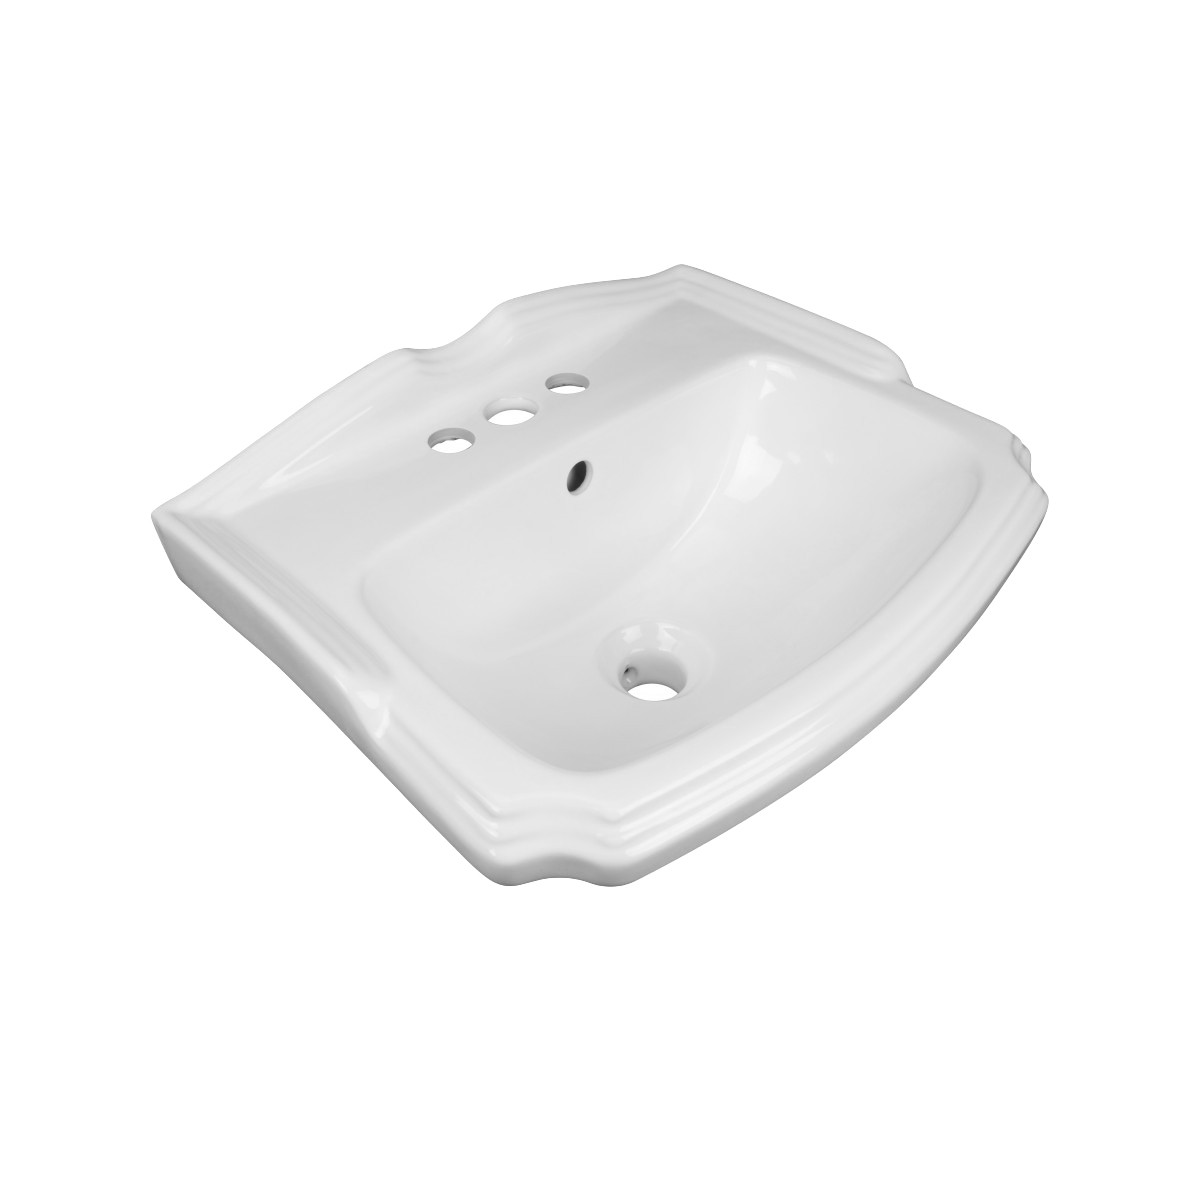 small wall mount bathroom sink white china centerset with overflow